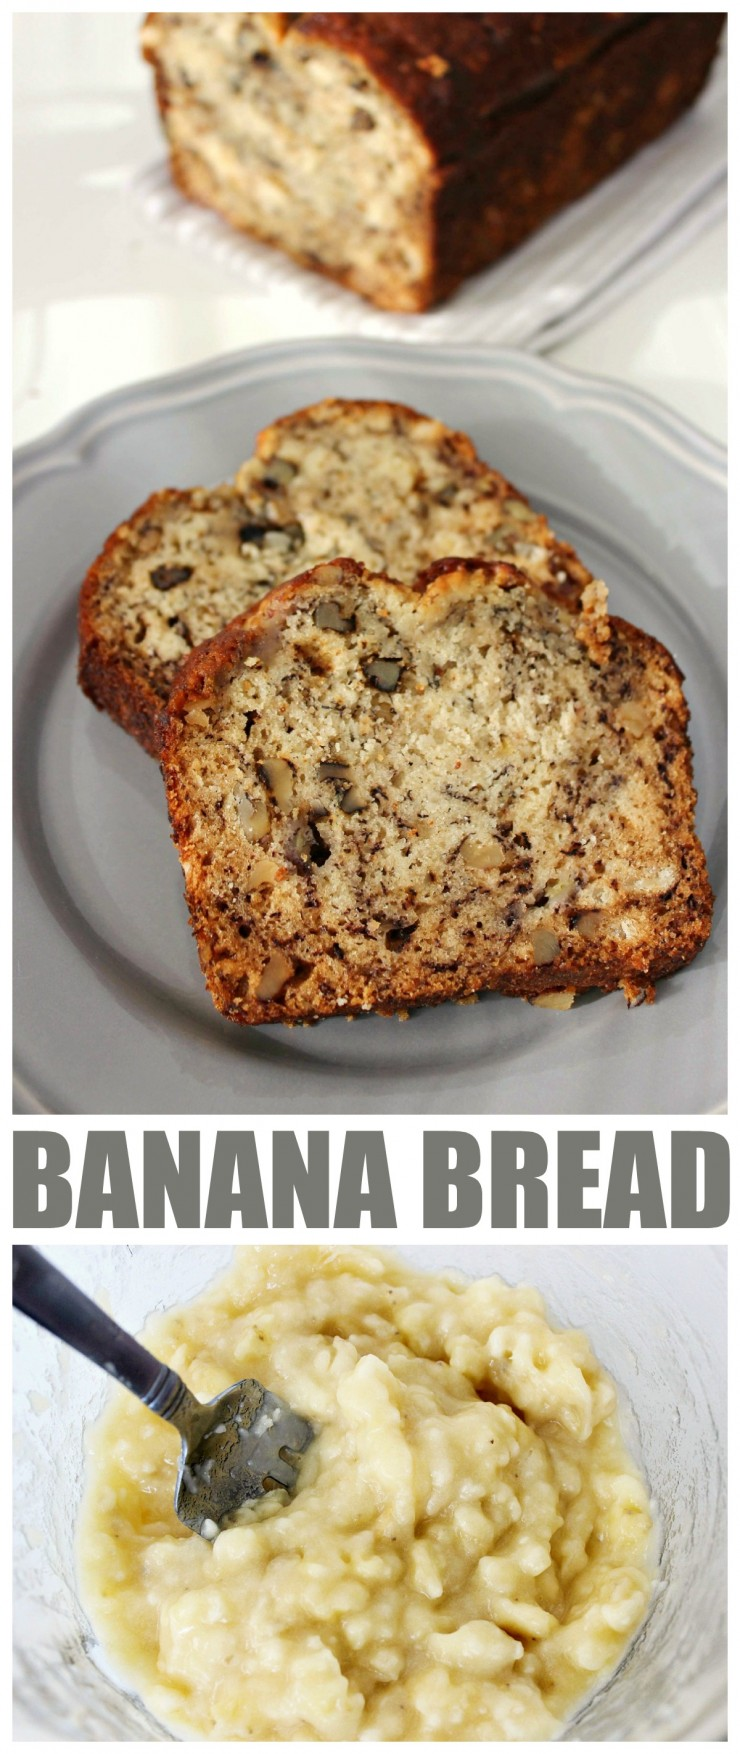 Banana bread is a great way to use up over-ripe bananas and this recipe is seriously simple and you can't go wrong with that!